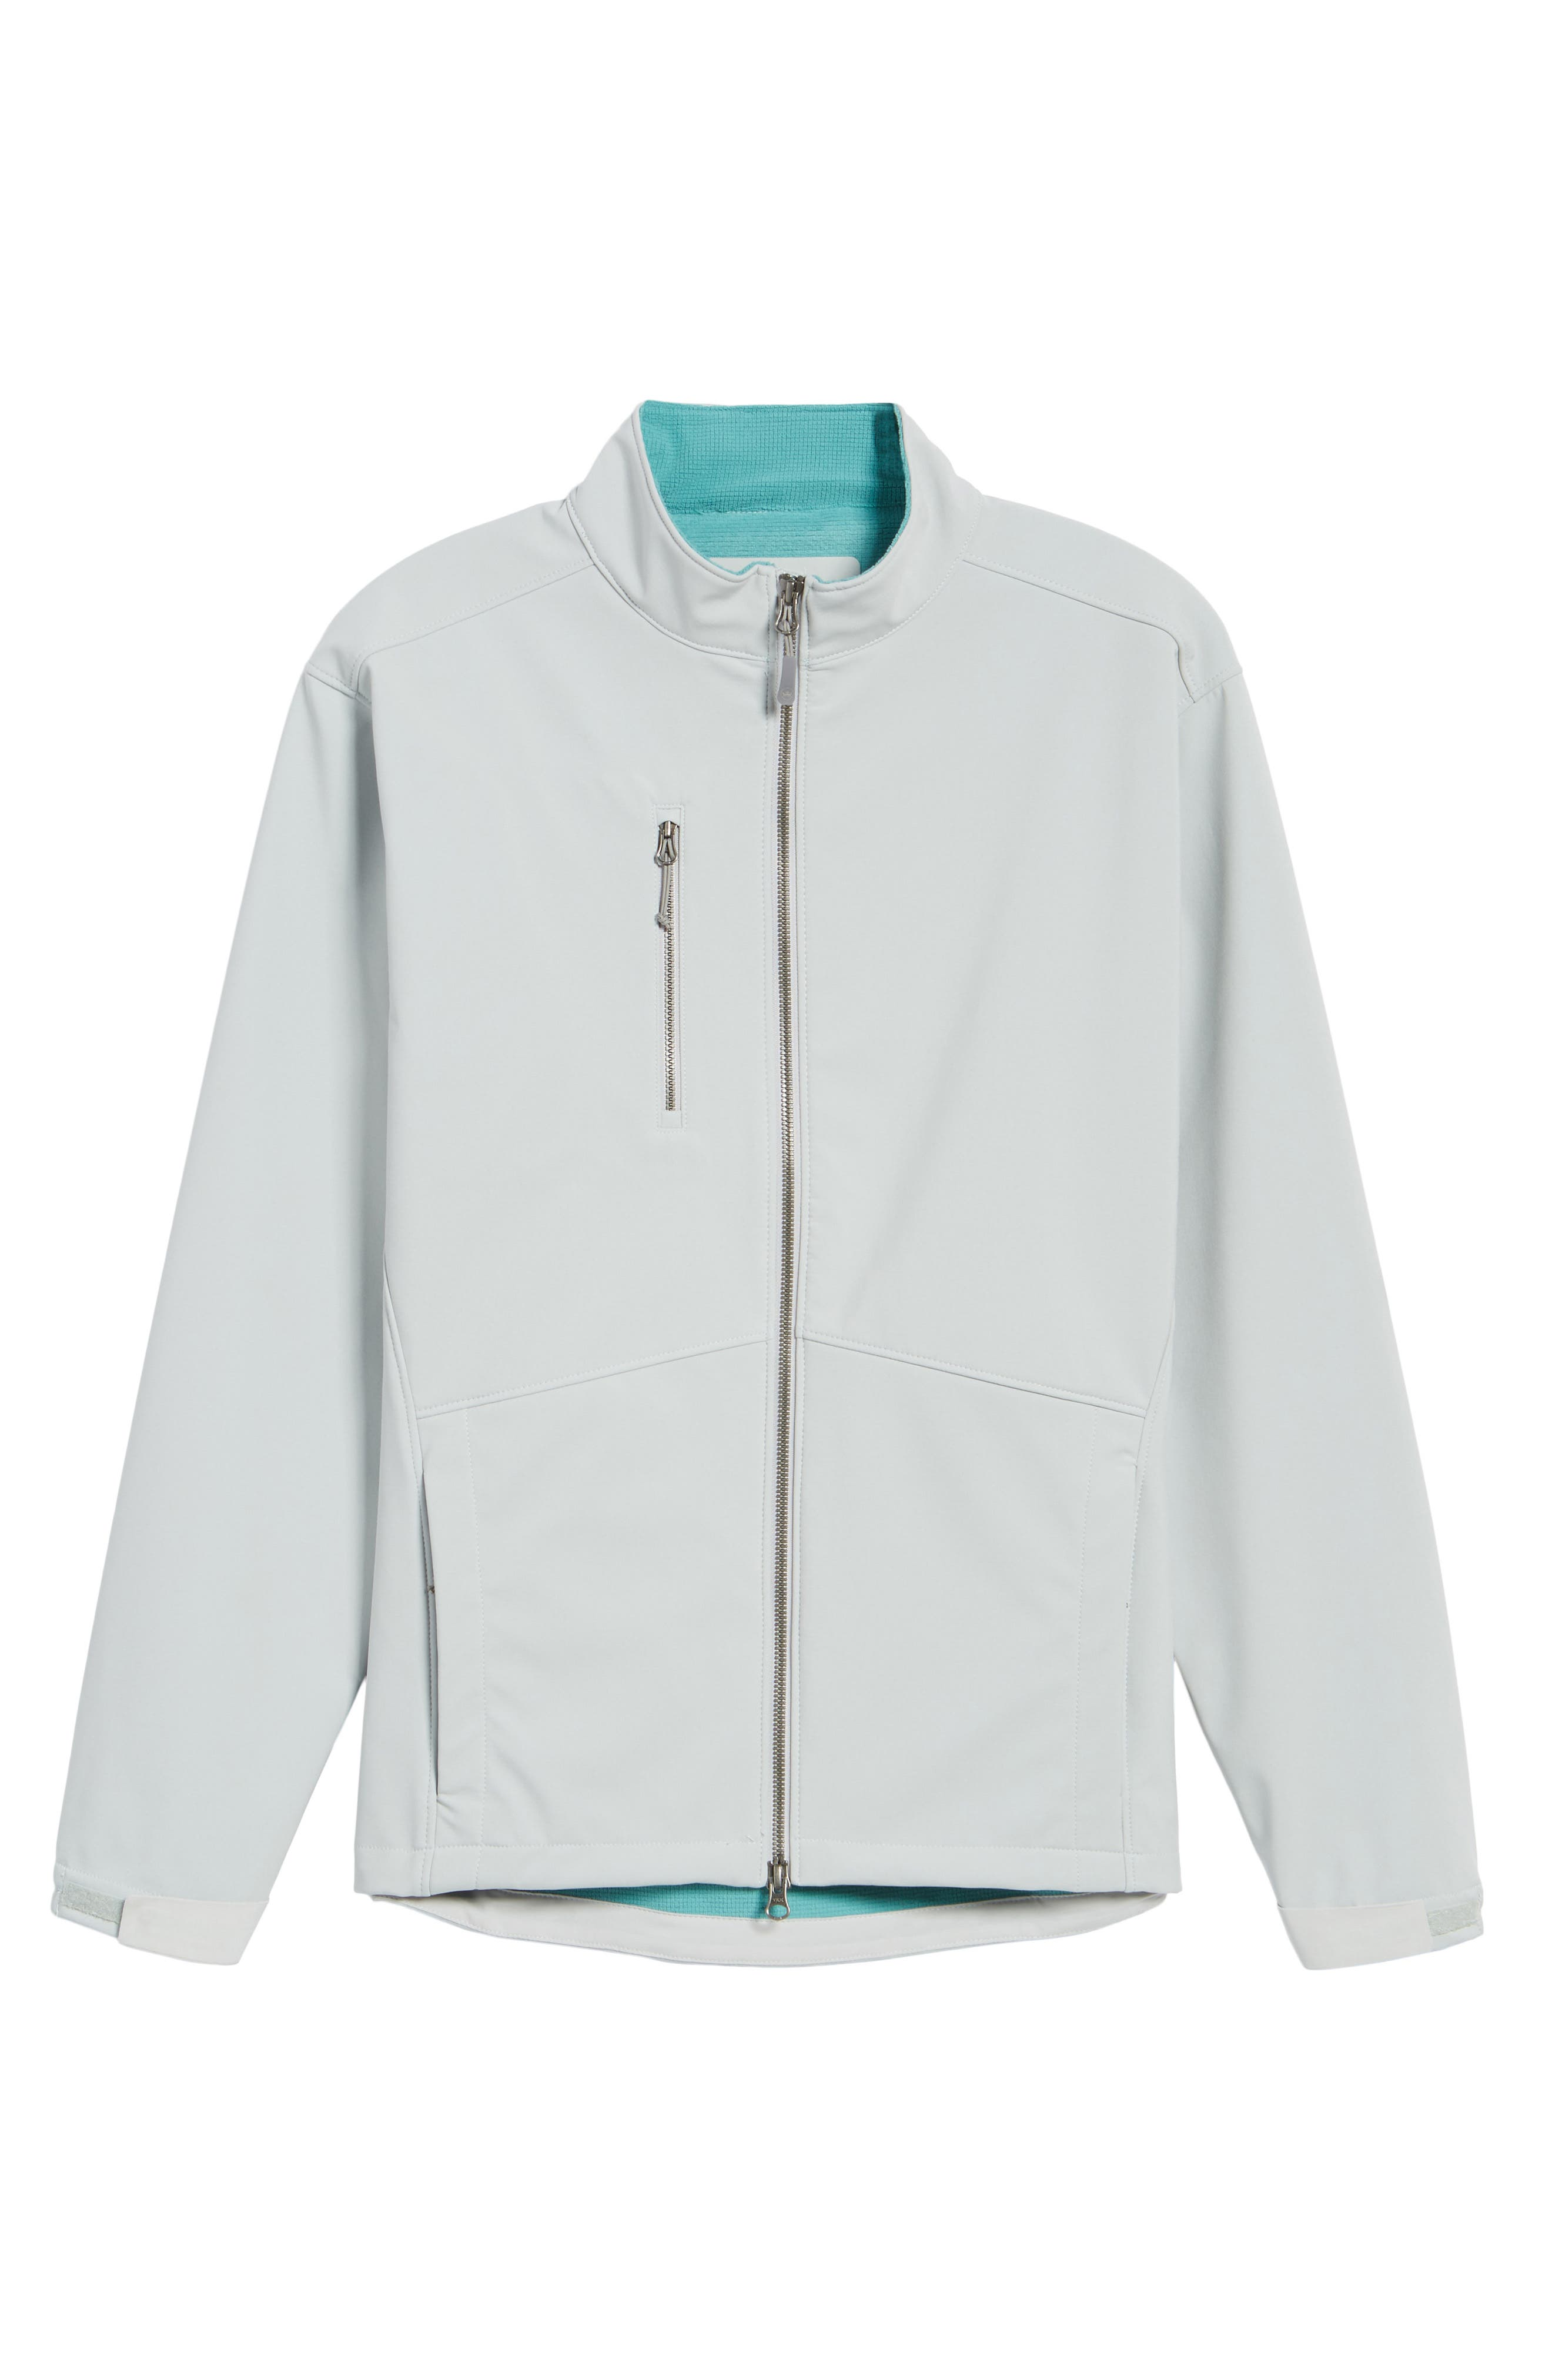 Anchorage 3-Layer Soft Shell Jacket,                             Alternate thumbnail 10, color,